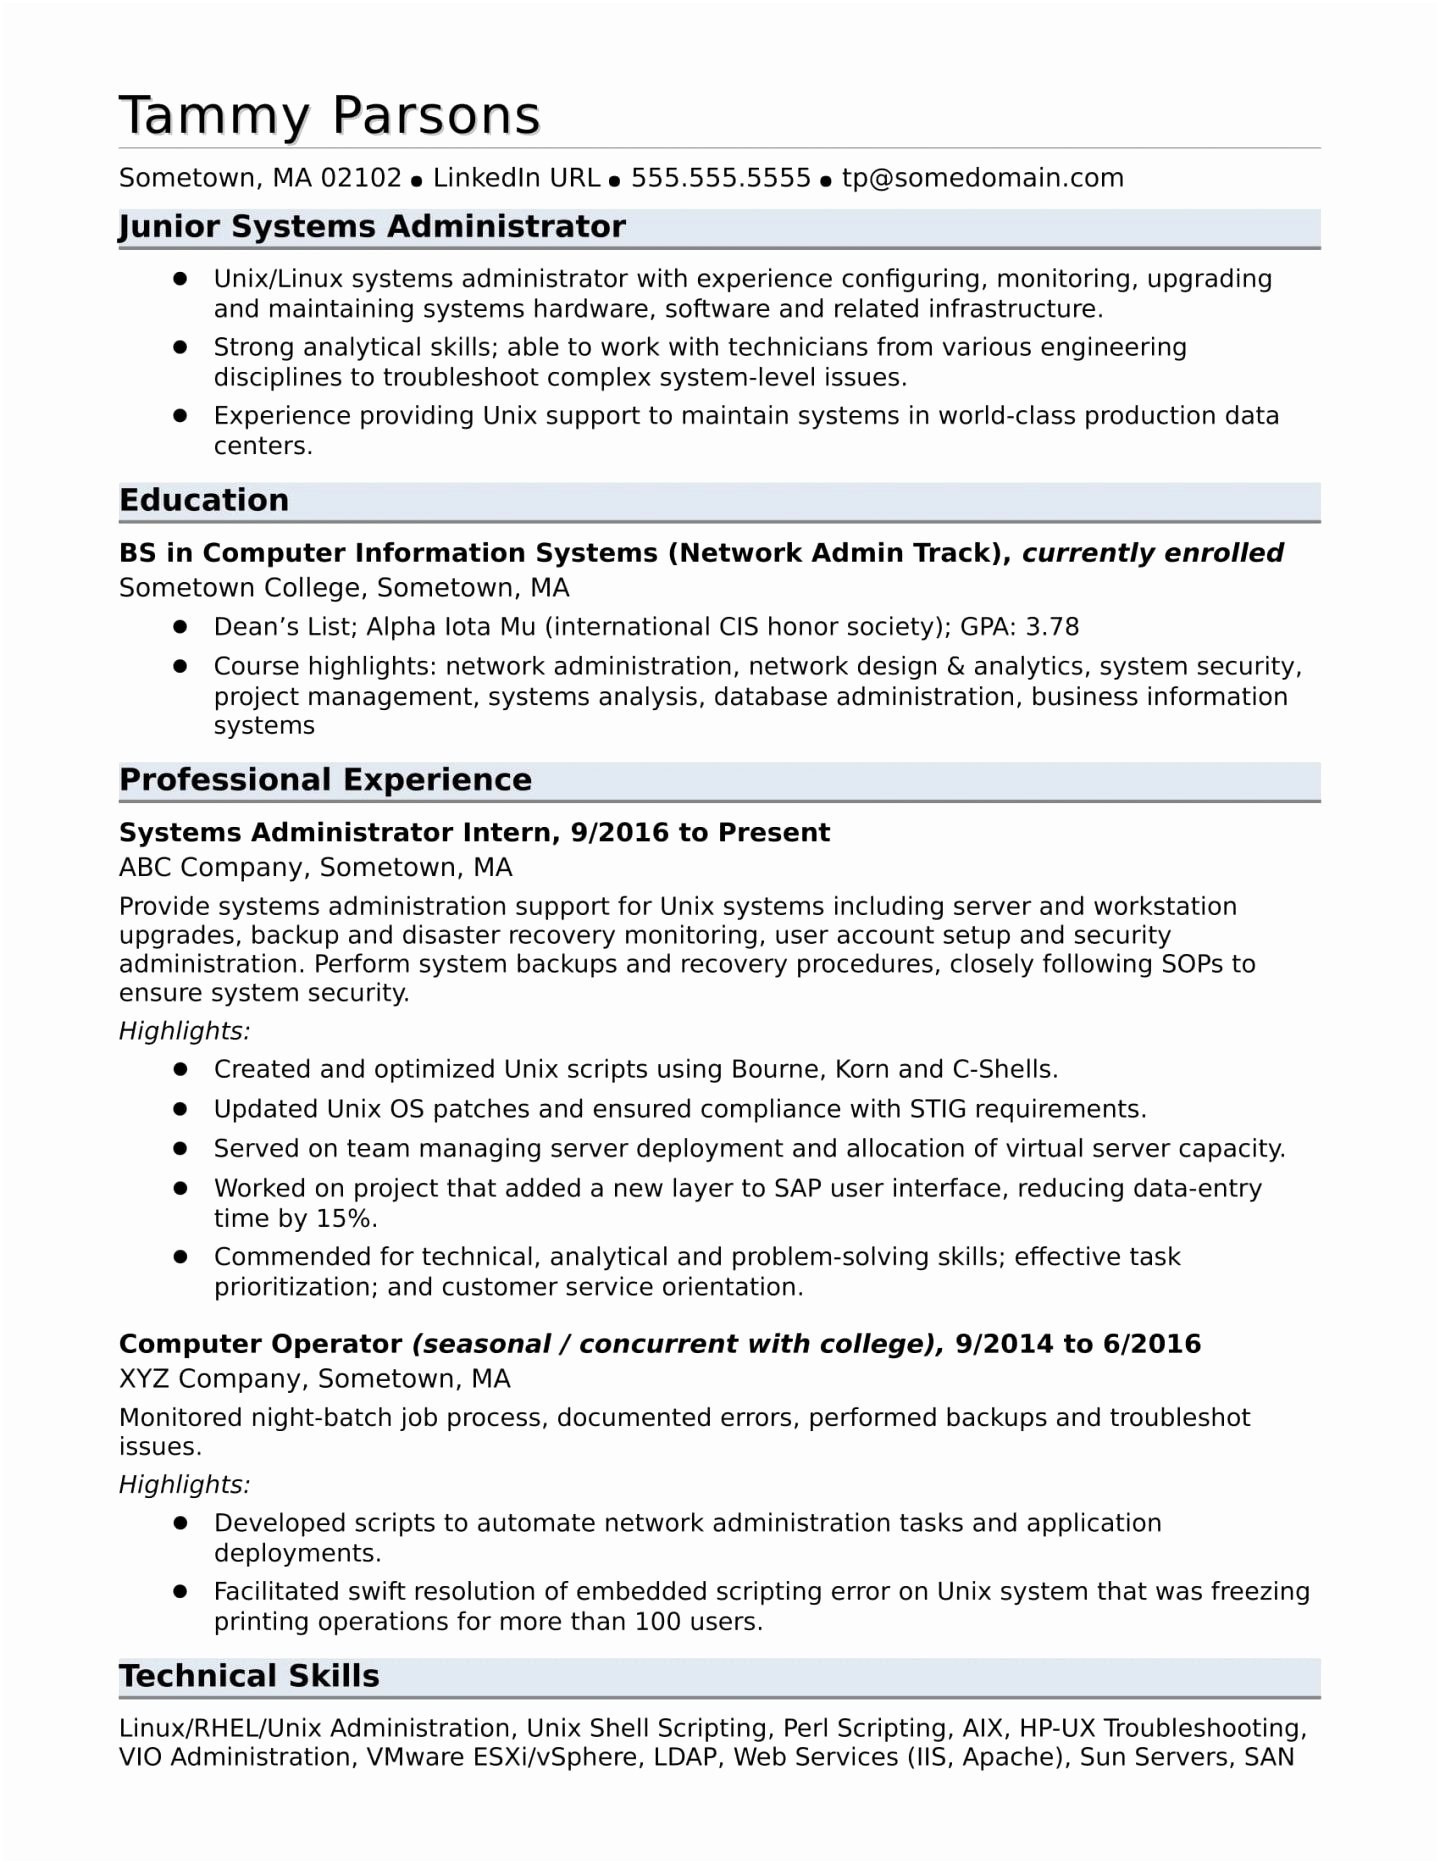 Programmer Resume Template - Junior Web Developer Resume Utd Resume Template Unique Fishing